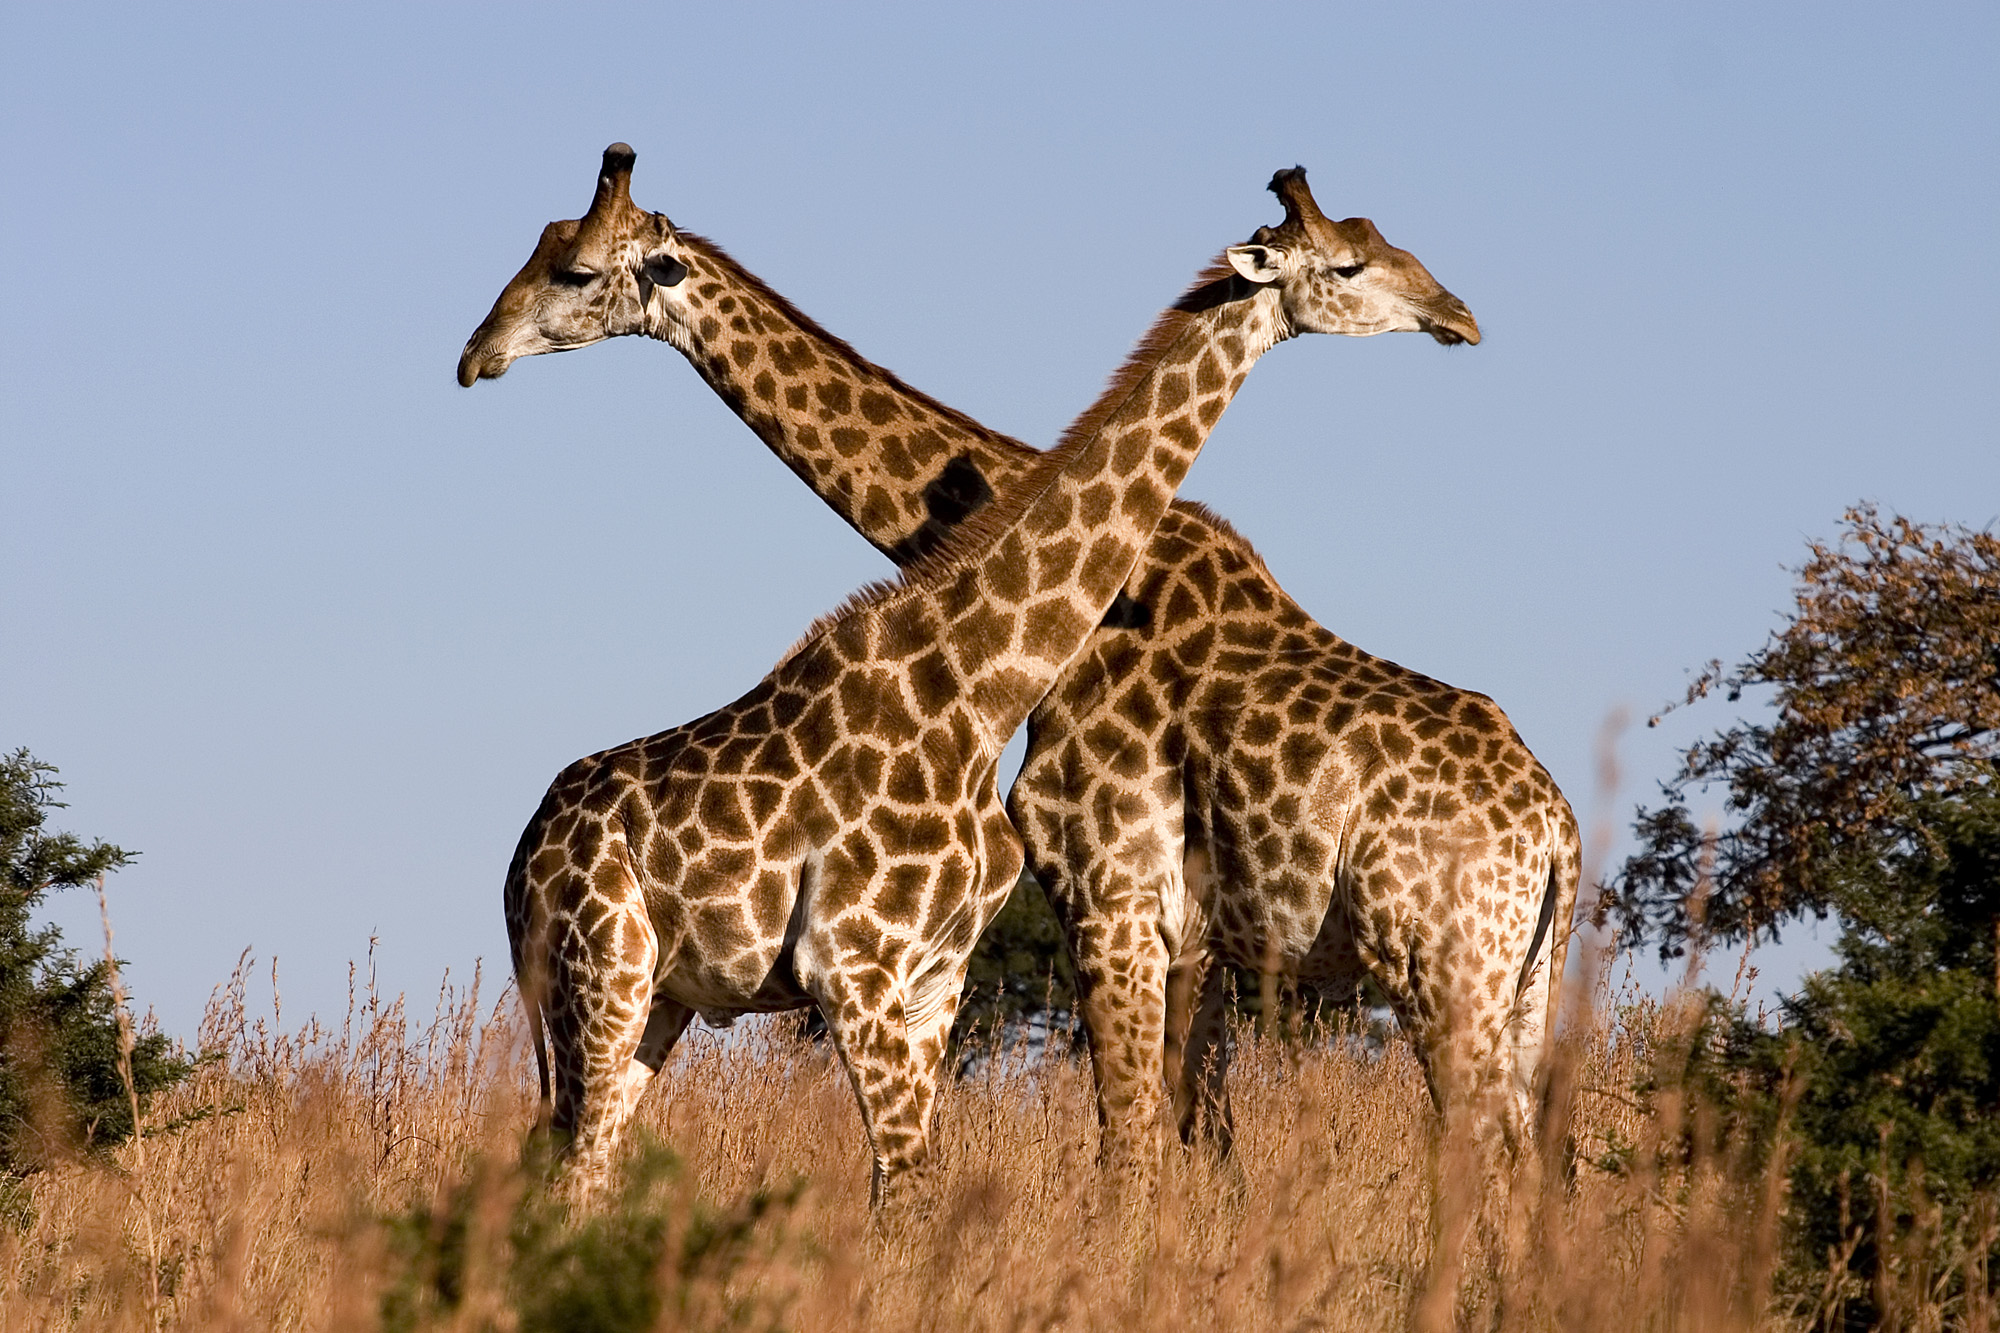 Giraffe - 03 photo